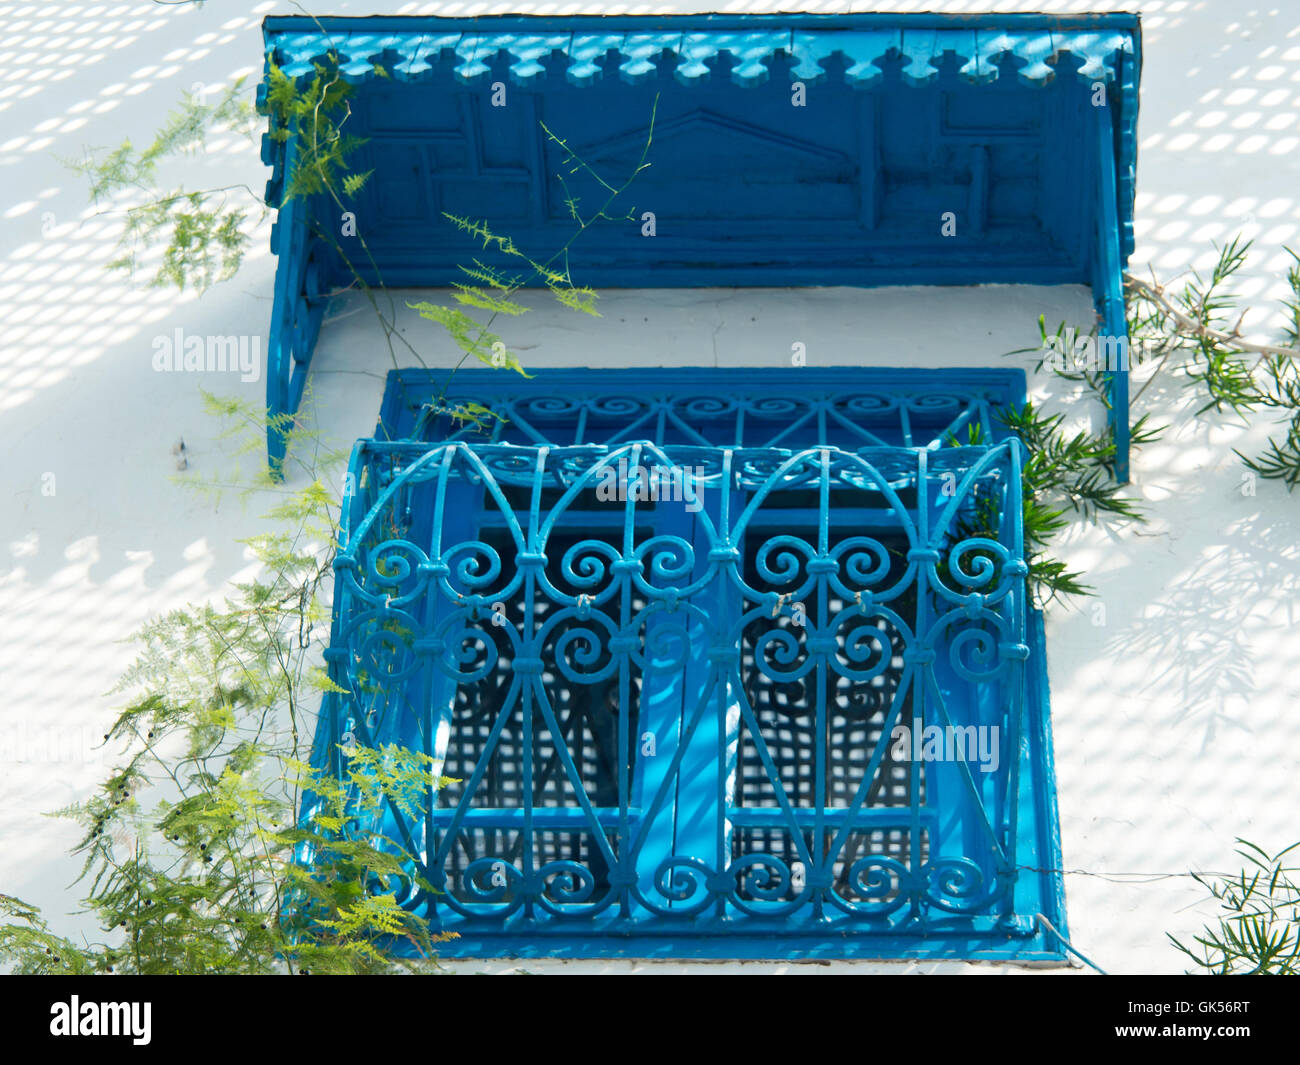 Tunis in tunesia - Stock Image